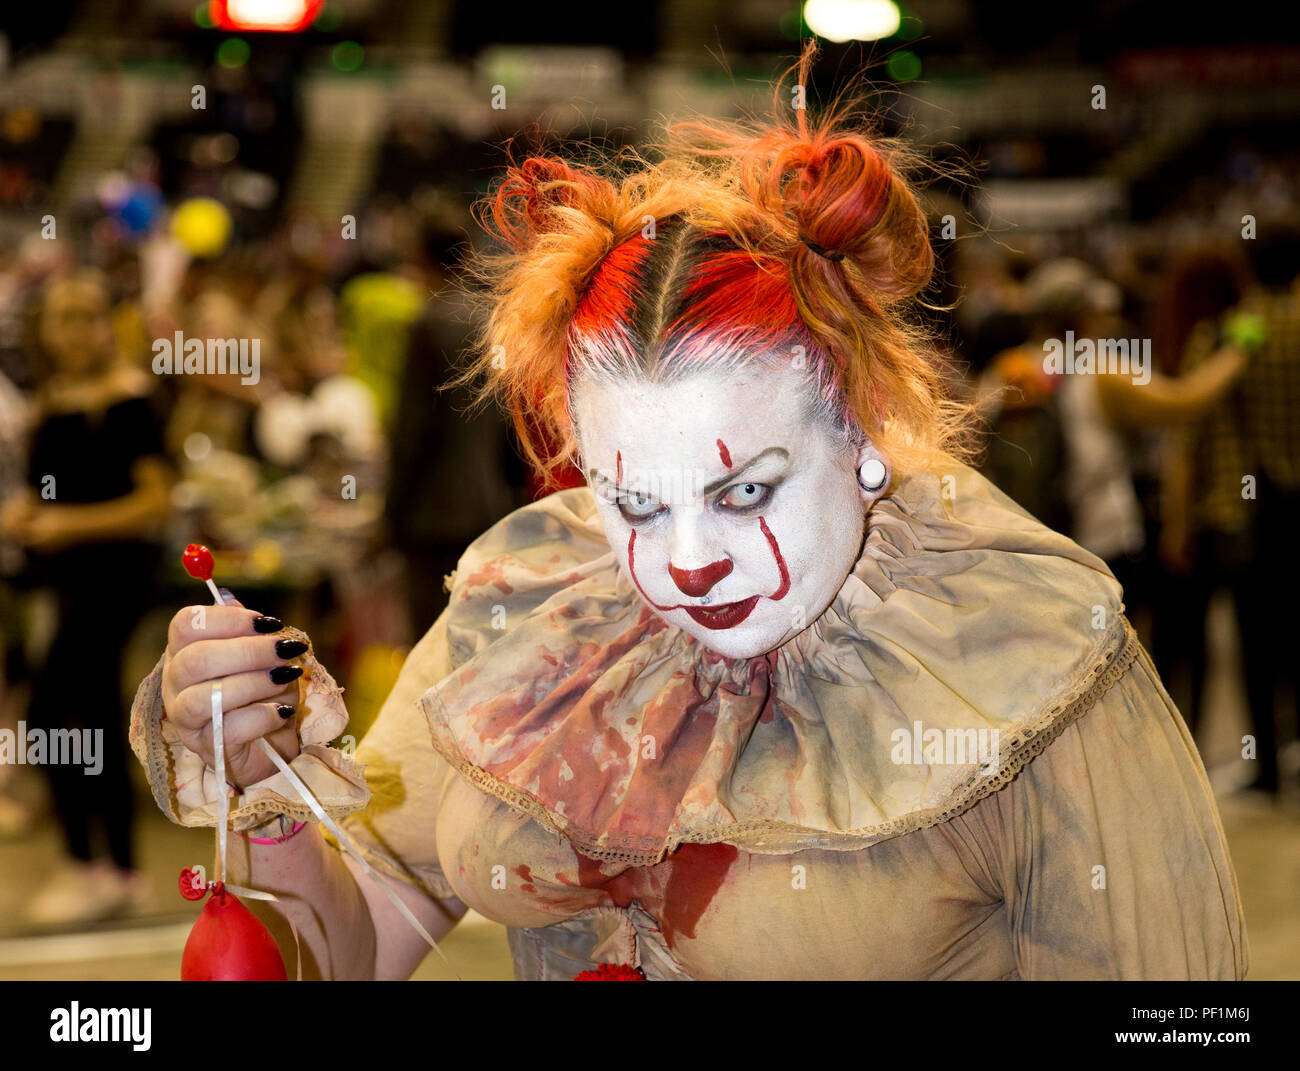 A female cosplayer dressed as Pennywise the clown from Stephen King's November IT and looking evil and menacing at a comic con event - Stock Image